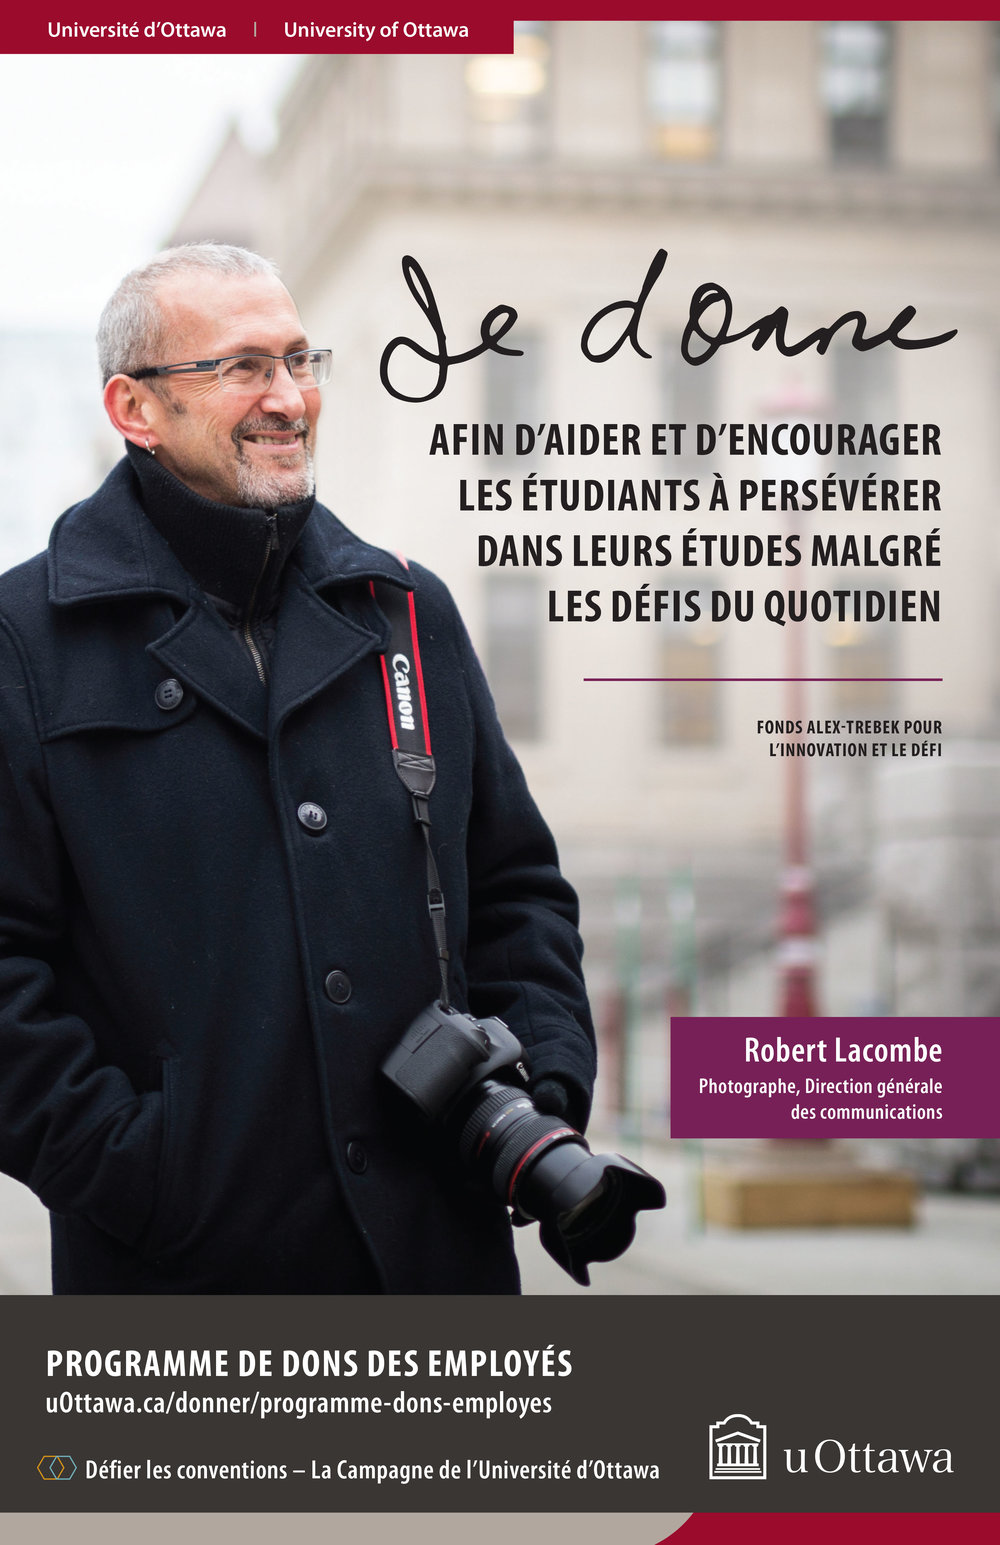 DEVT15_252_EmployeeGiving2016_Posters_FR_FINAL_PRINT_nocrop_Robert.jpg